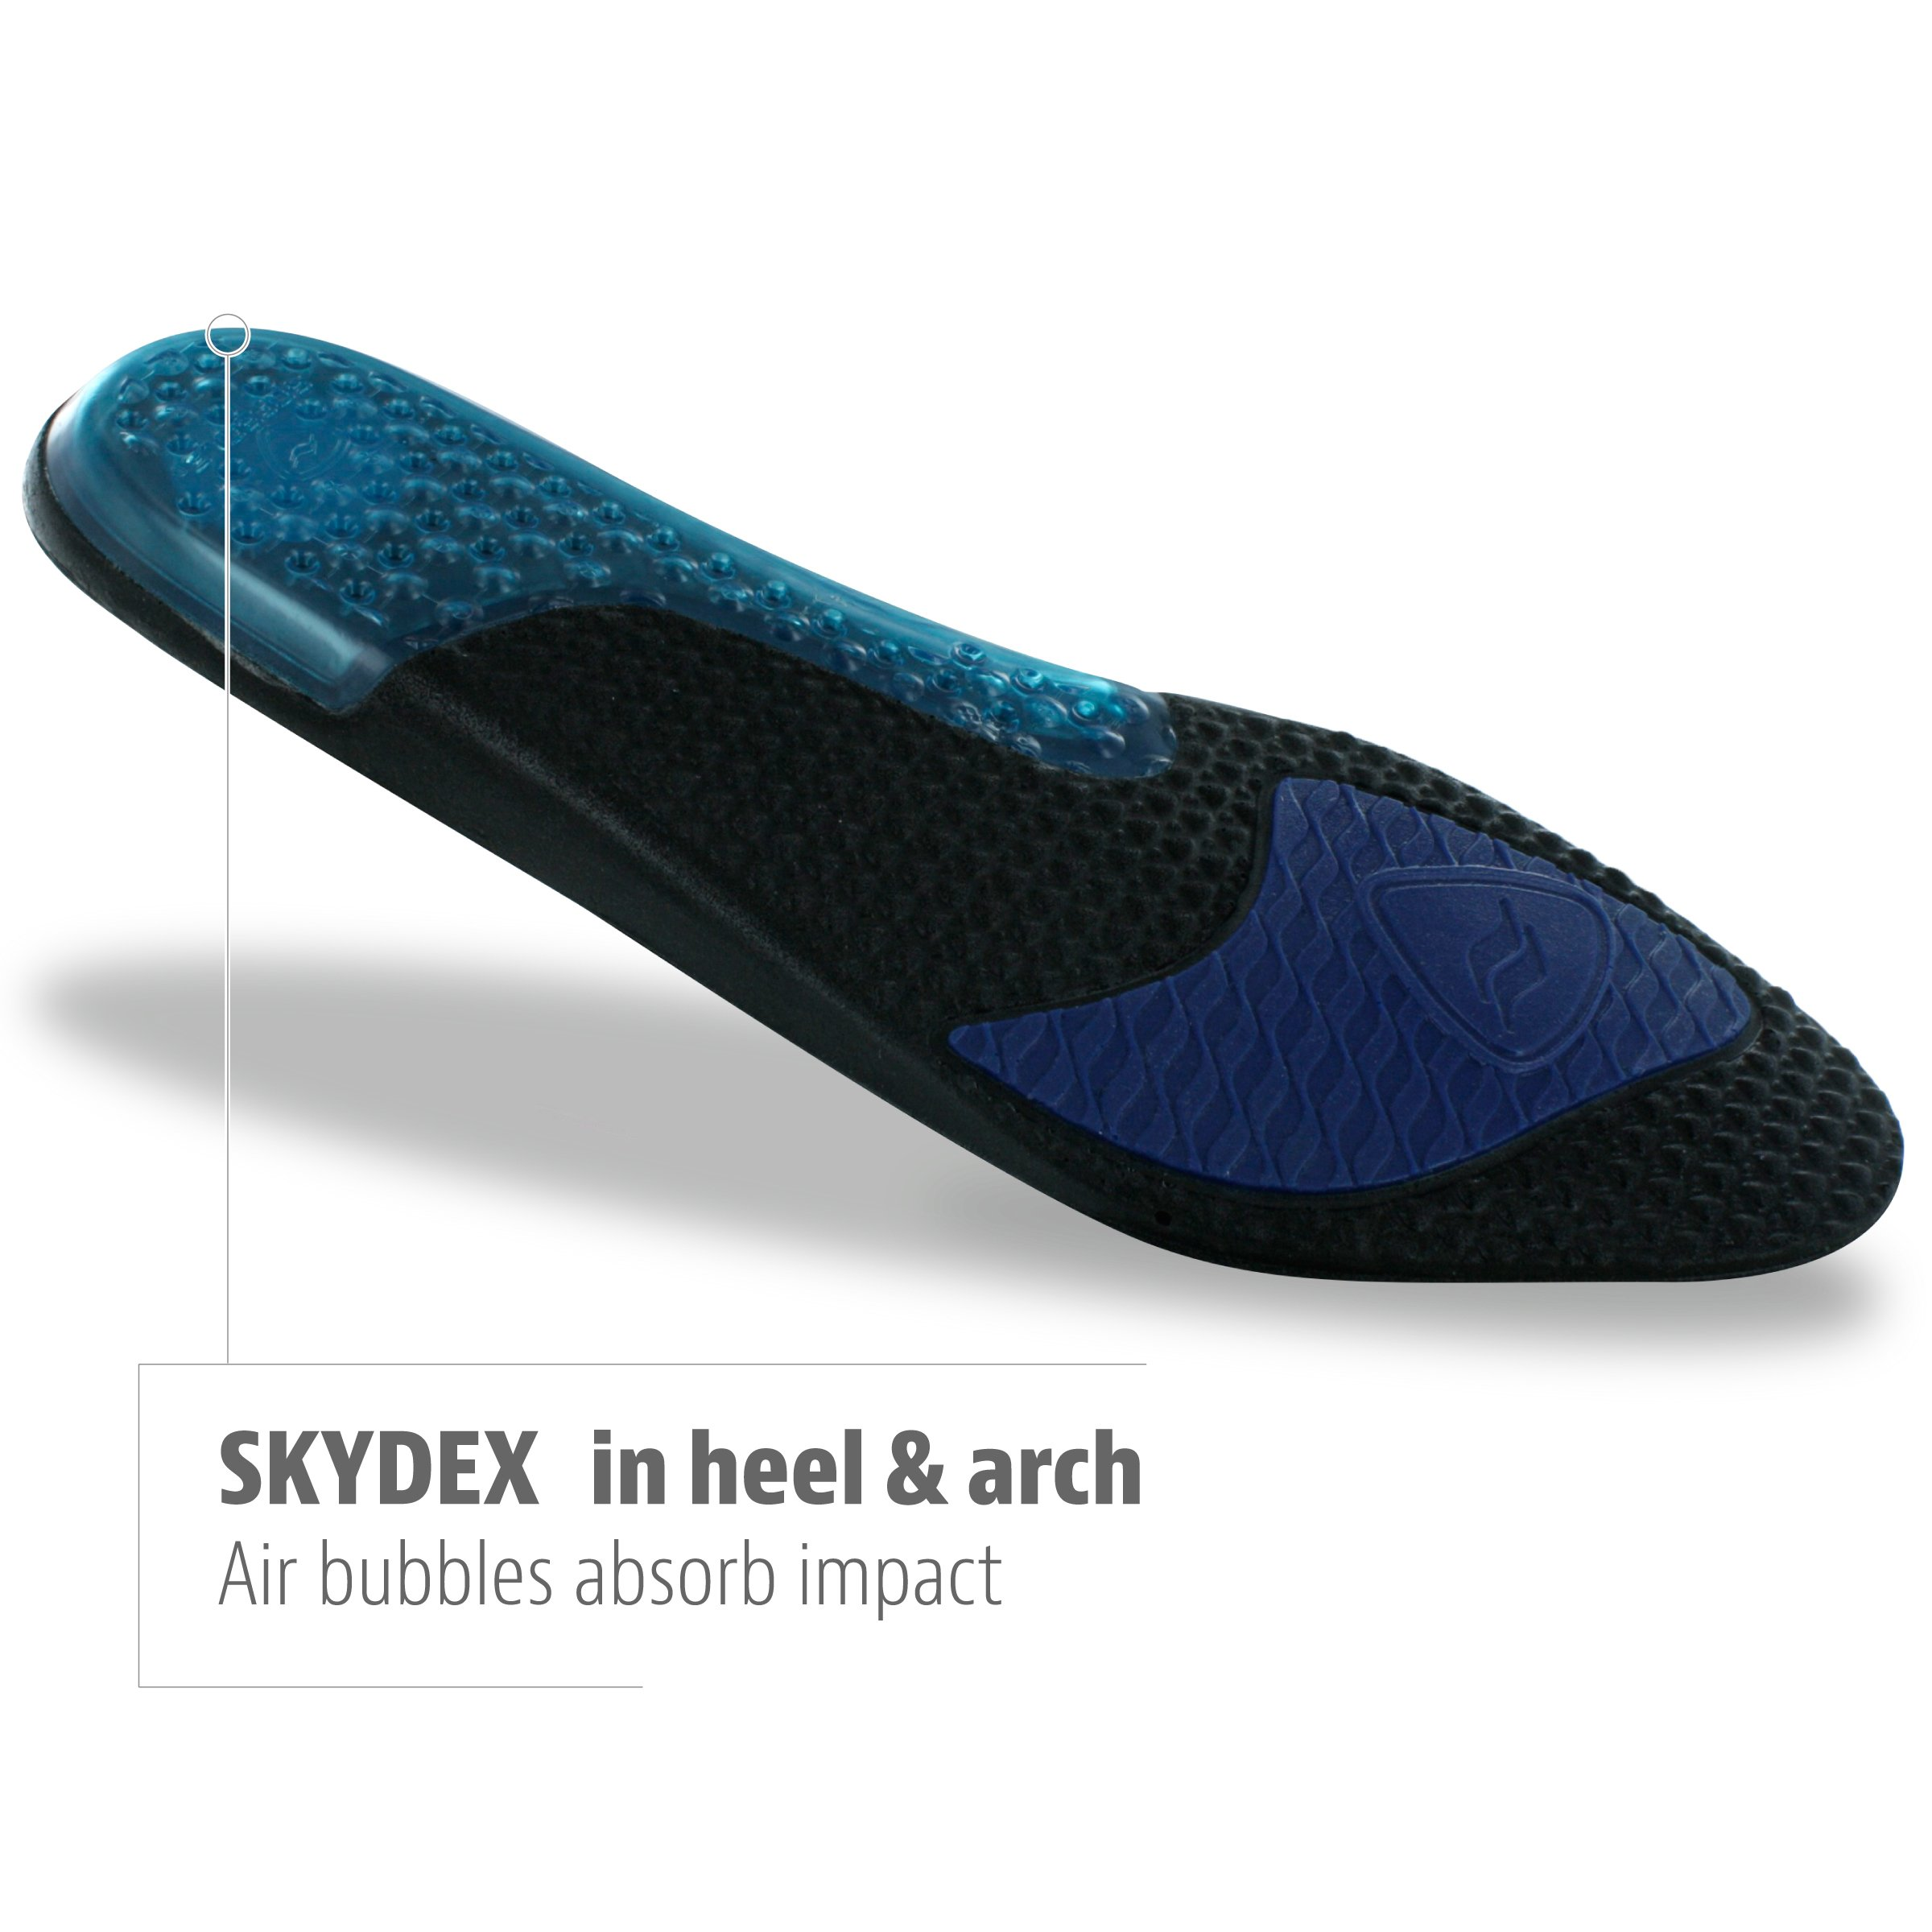 Sof Sole Airr Performance Insole, Men's Size 7-8.5 by Sof Sole (Image #3)